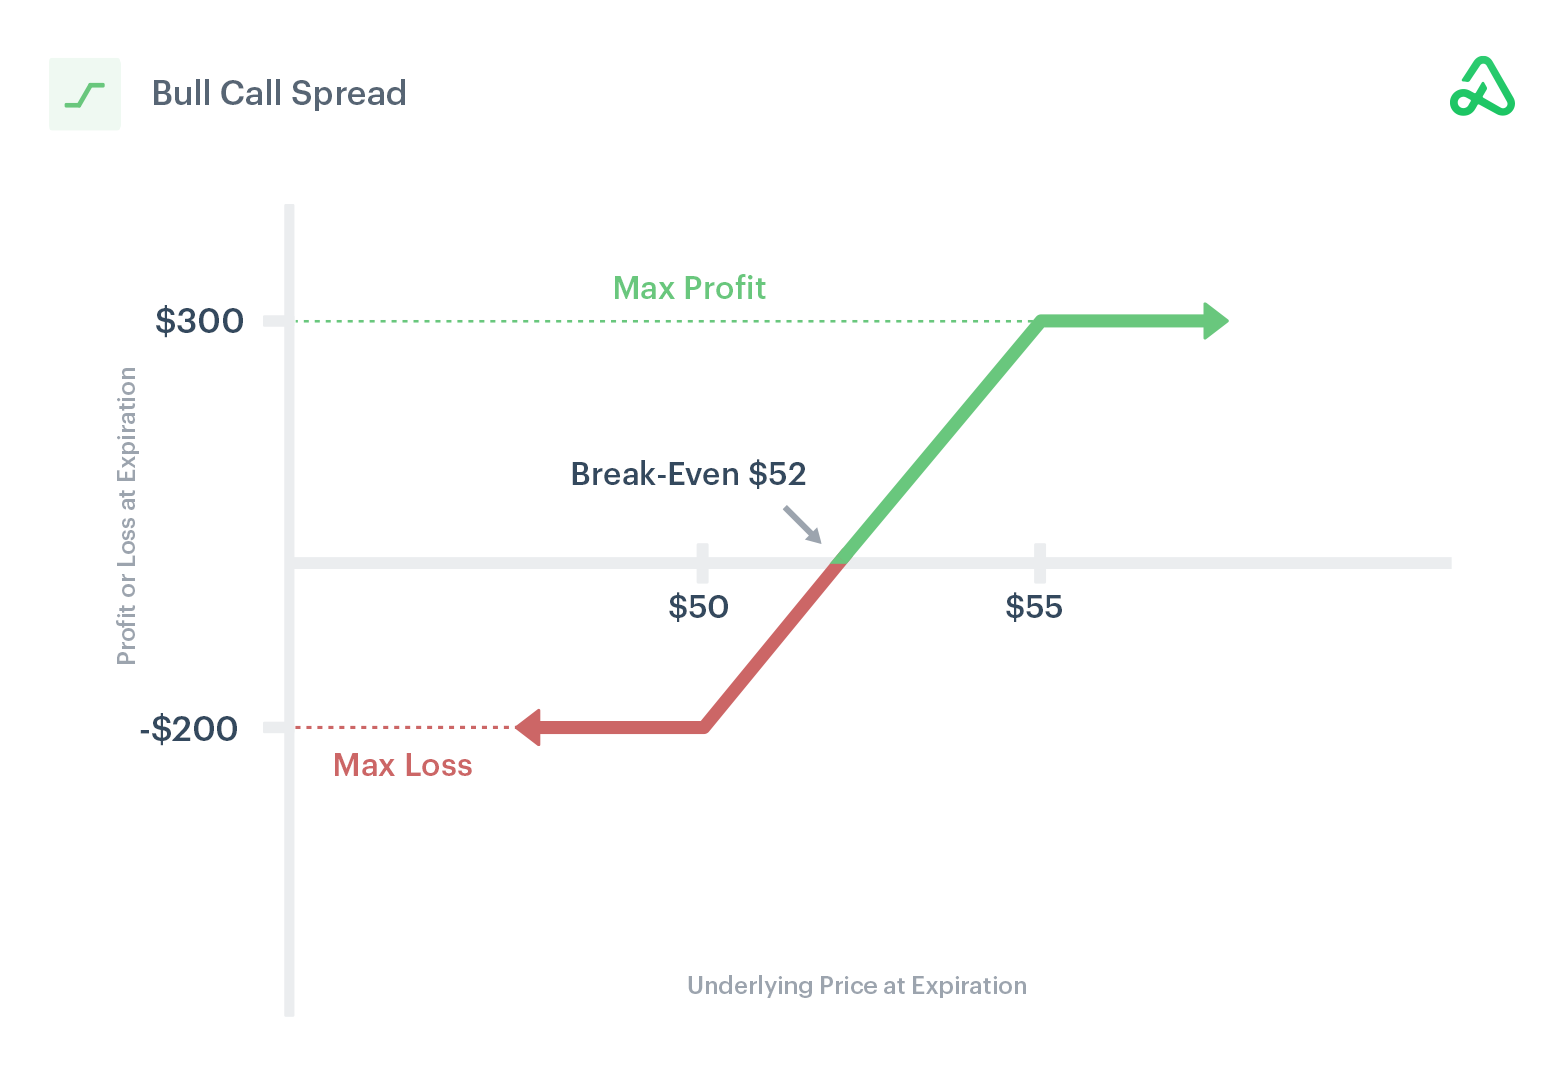 Image of bull call spread payoff diagram showing max profit, max loss, and break-even points